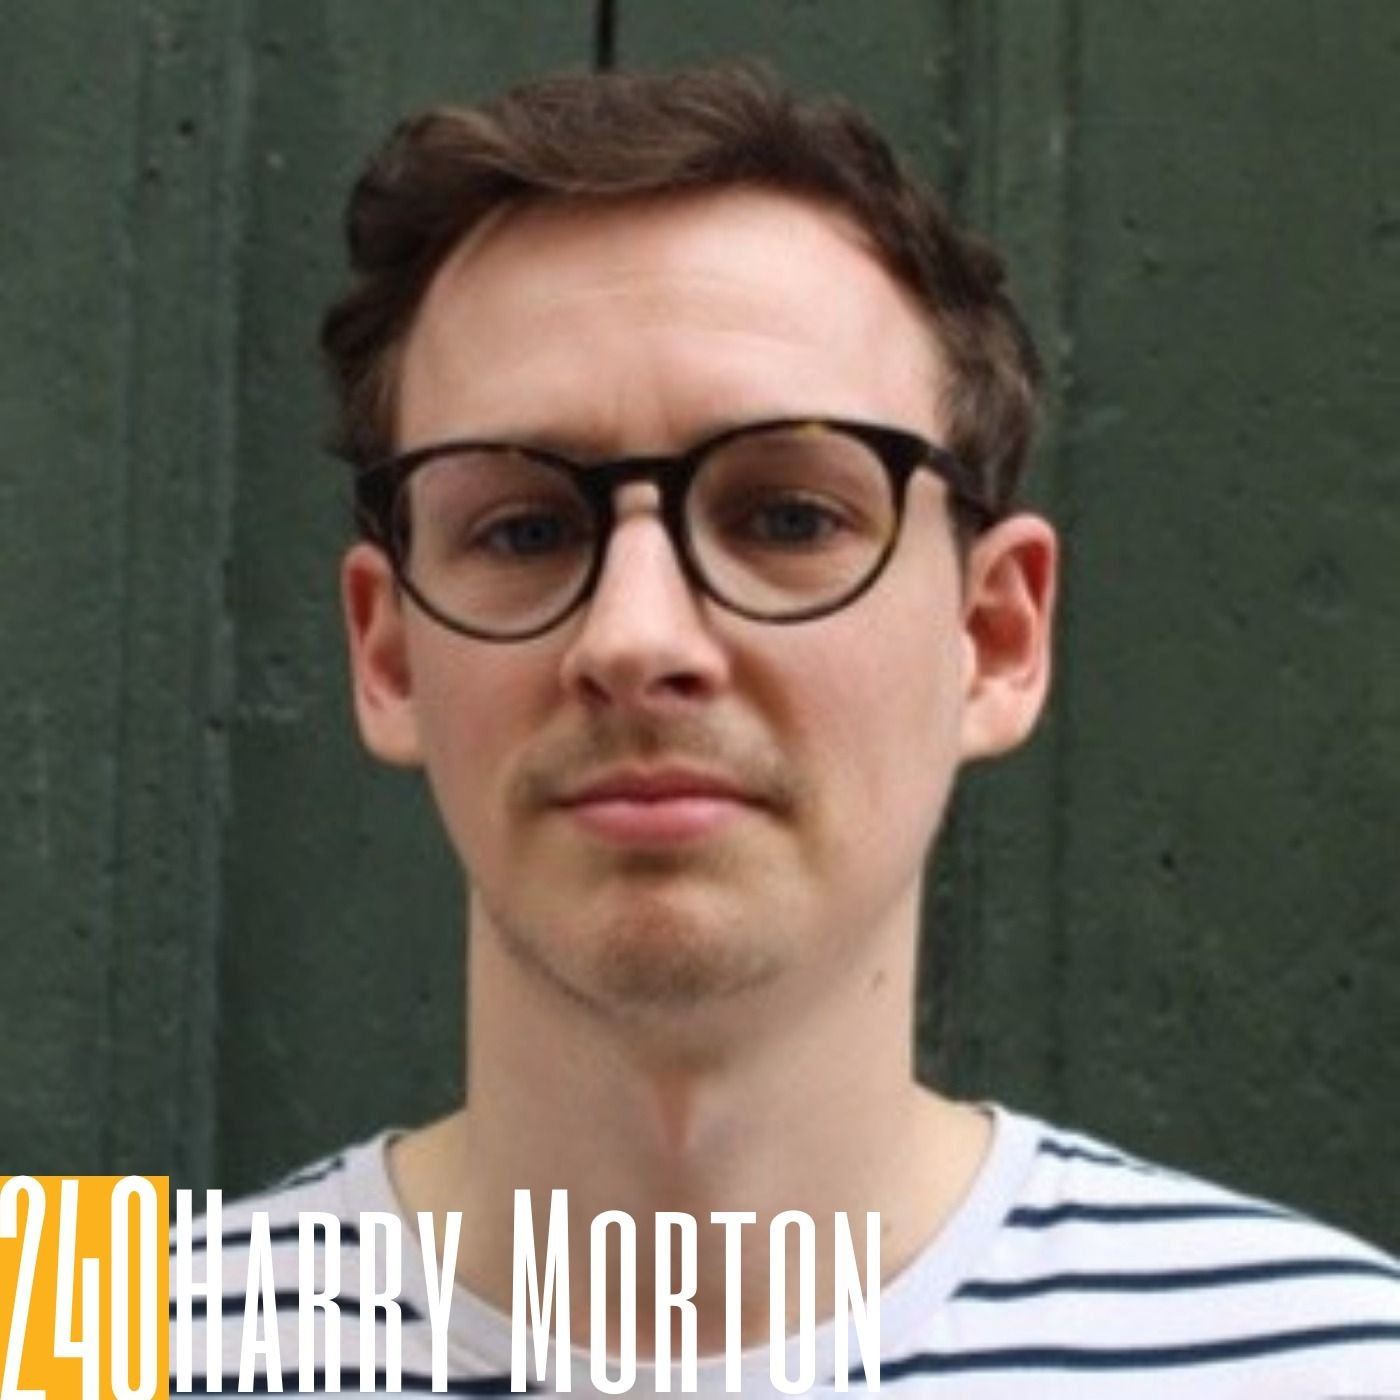 240 Harry Morton - Just Go Out And Do It: The Rallying Cry of the Entrepreneur